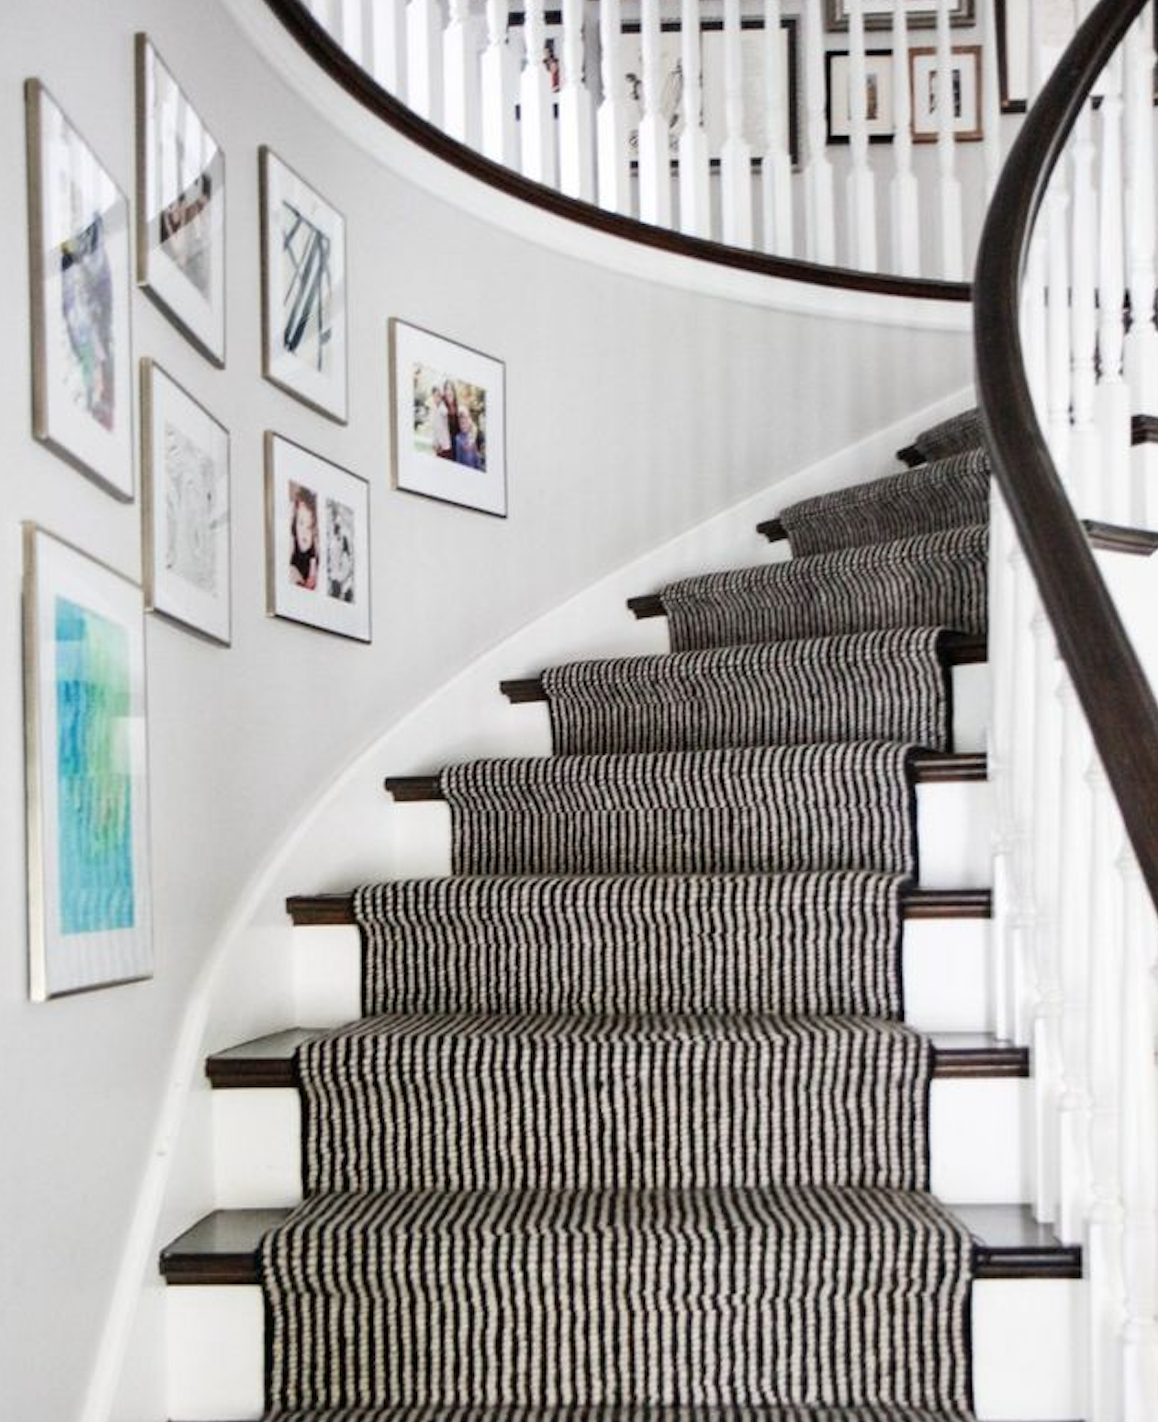 28 Best Stairway Decorating Ideas And Designs For 2020: Stair Runners: 6 Of Our Favorite Ways To Modernize Your